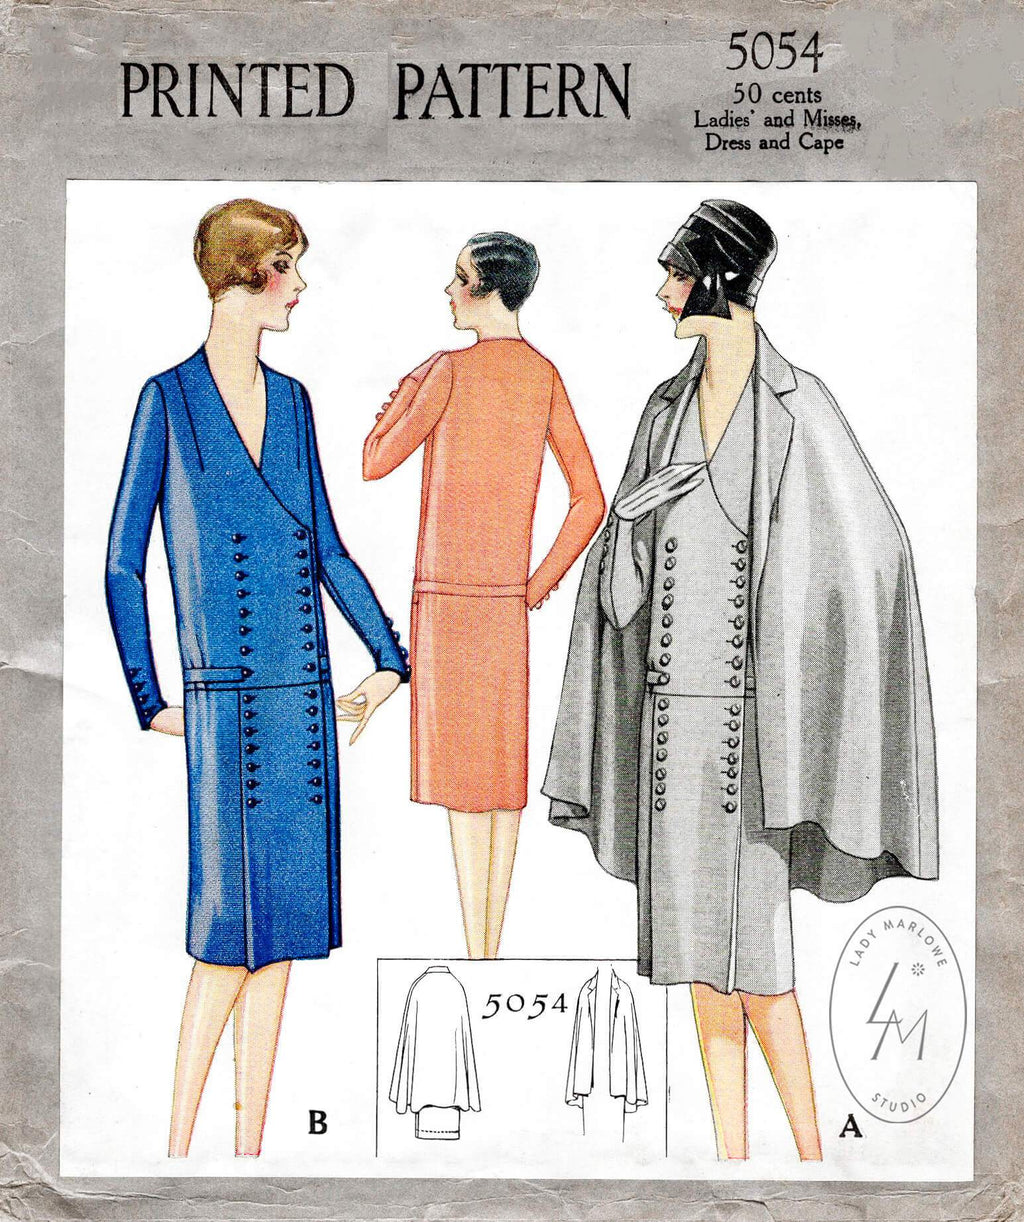 1920s 1927 McCall 5054 drop waist dress & cape vintage sewing pattern reproduction